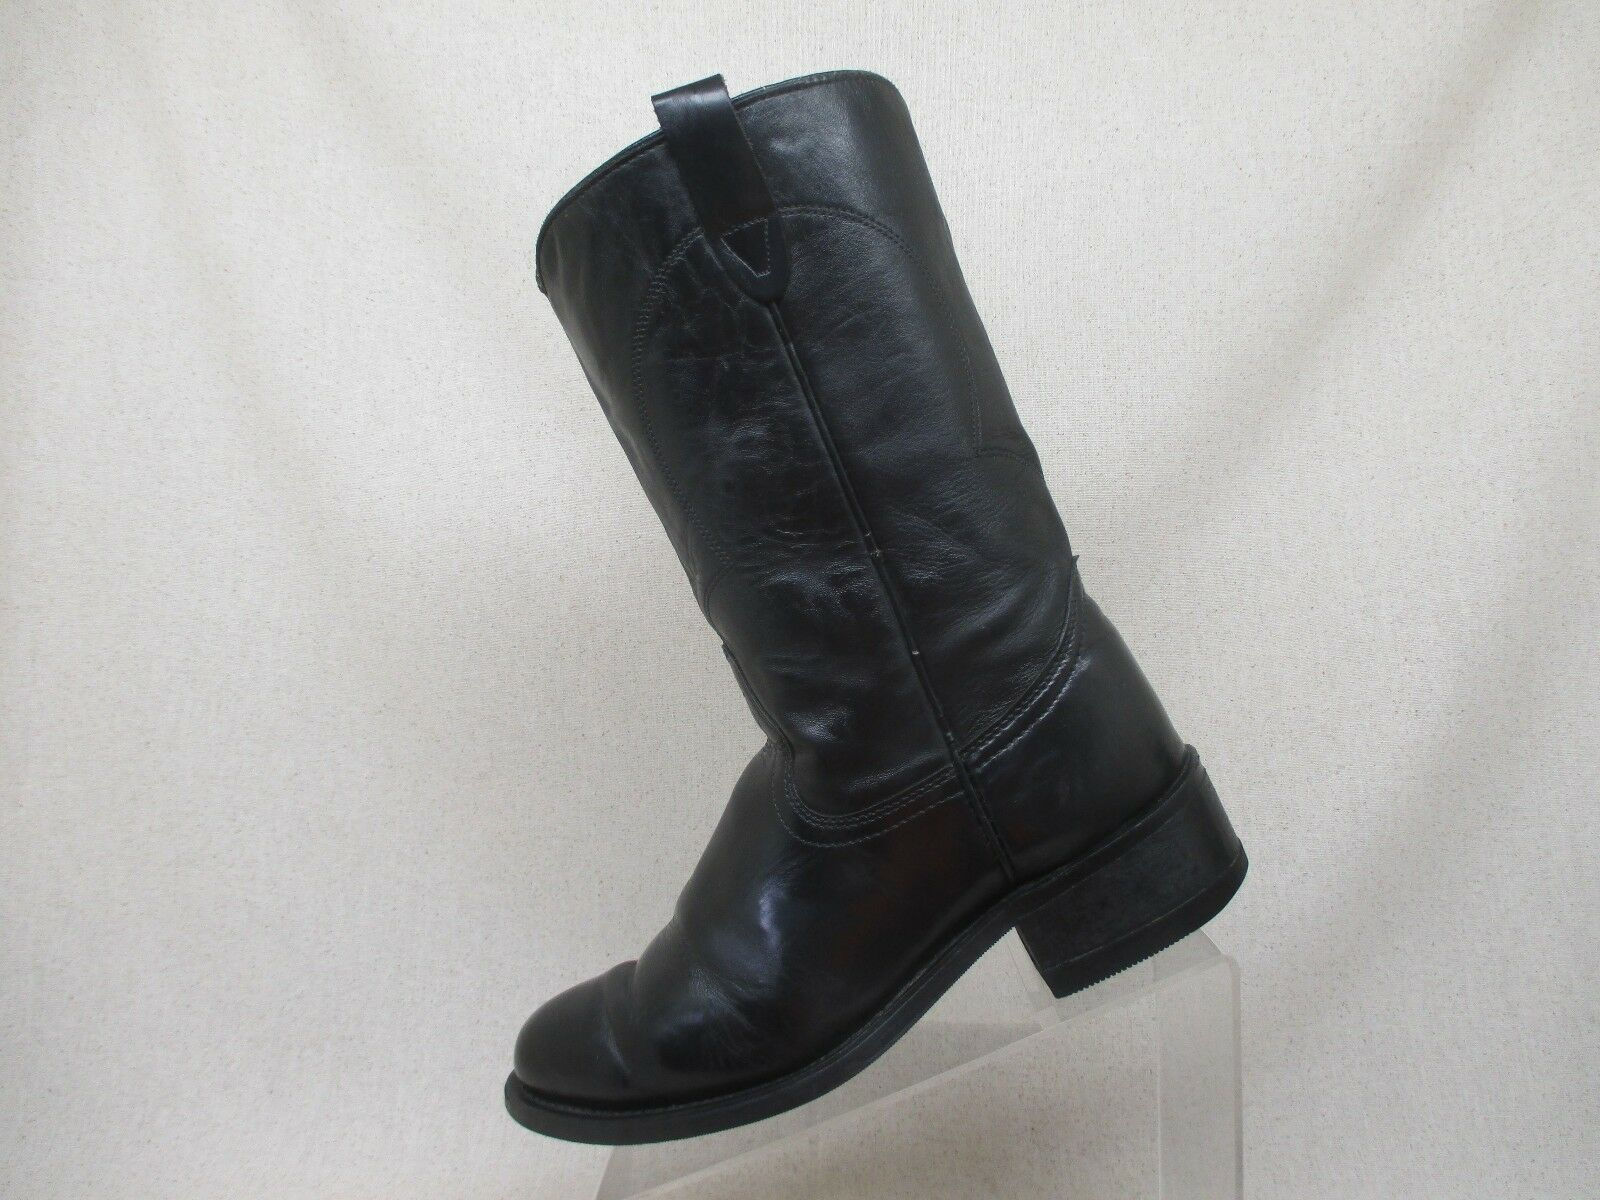 Texas Brand Shiny Black Leather Cowboy Western Work Boots Size 8 D - 8300 USA